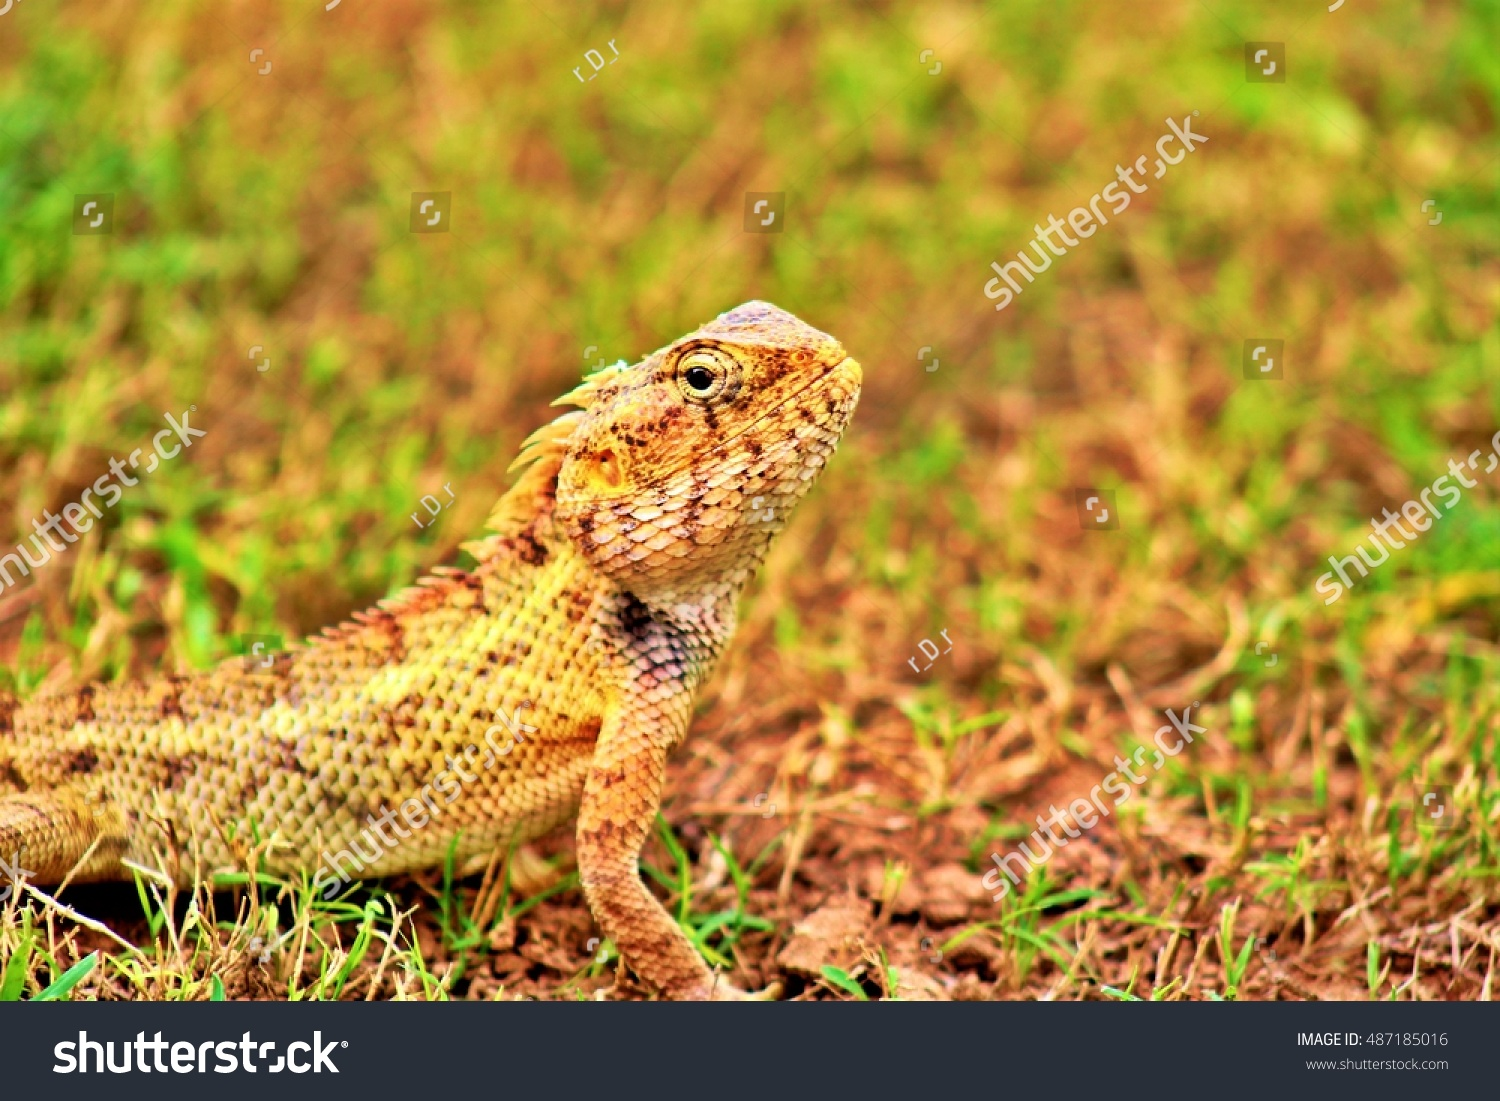 stock-photo-calotes-is-looking-me-487185